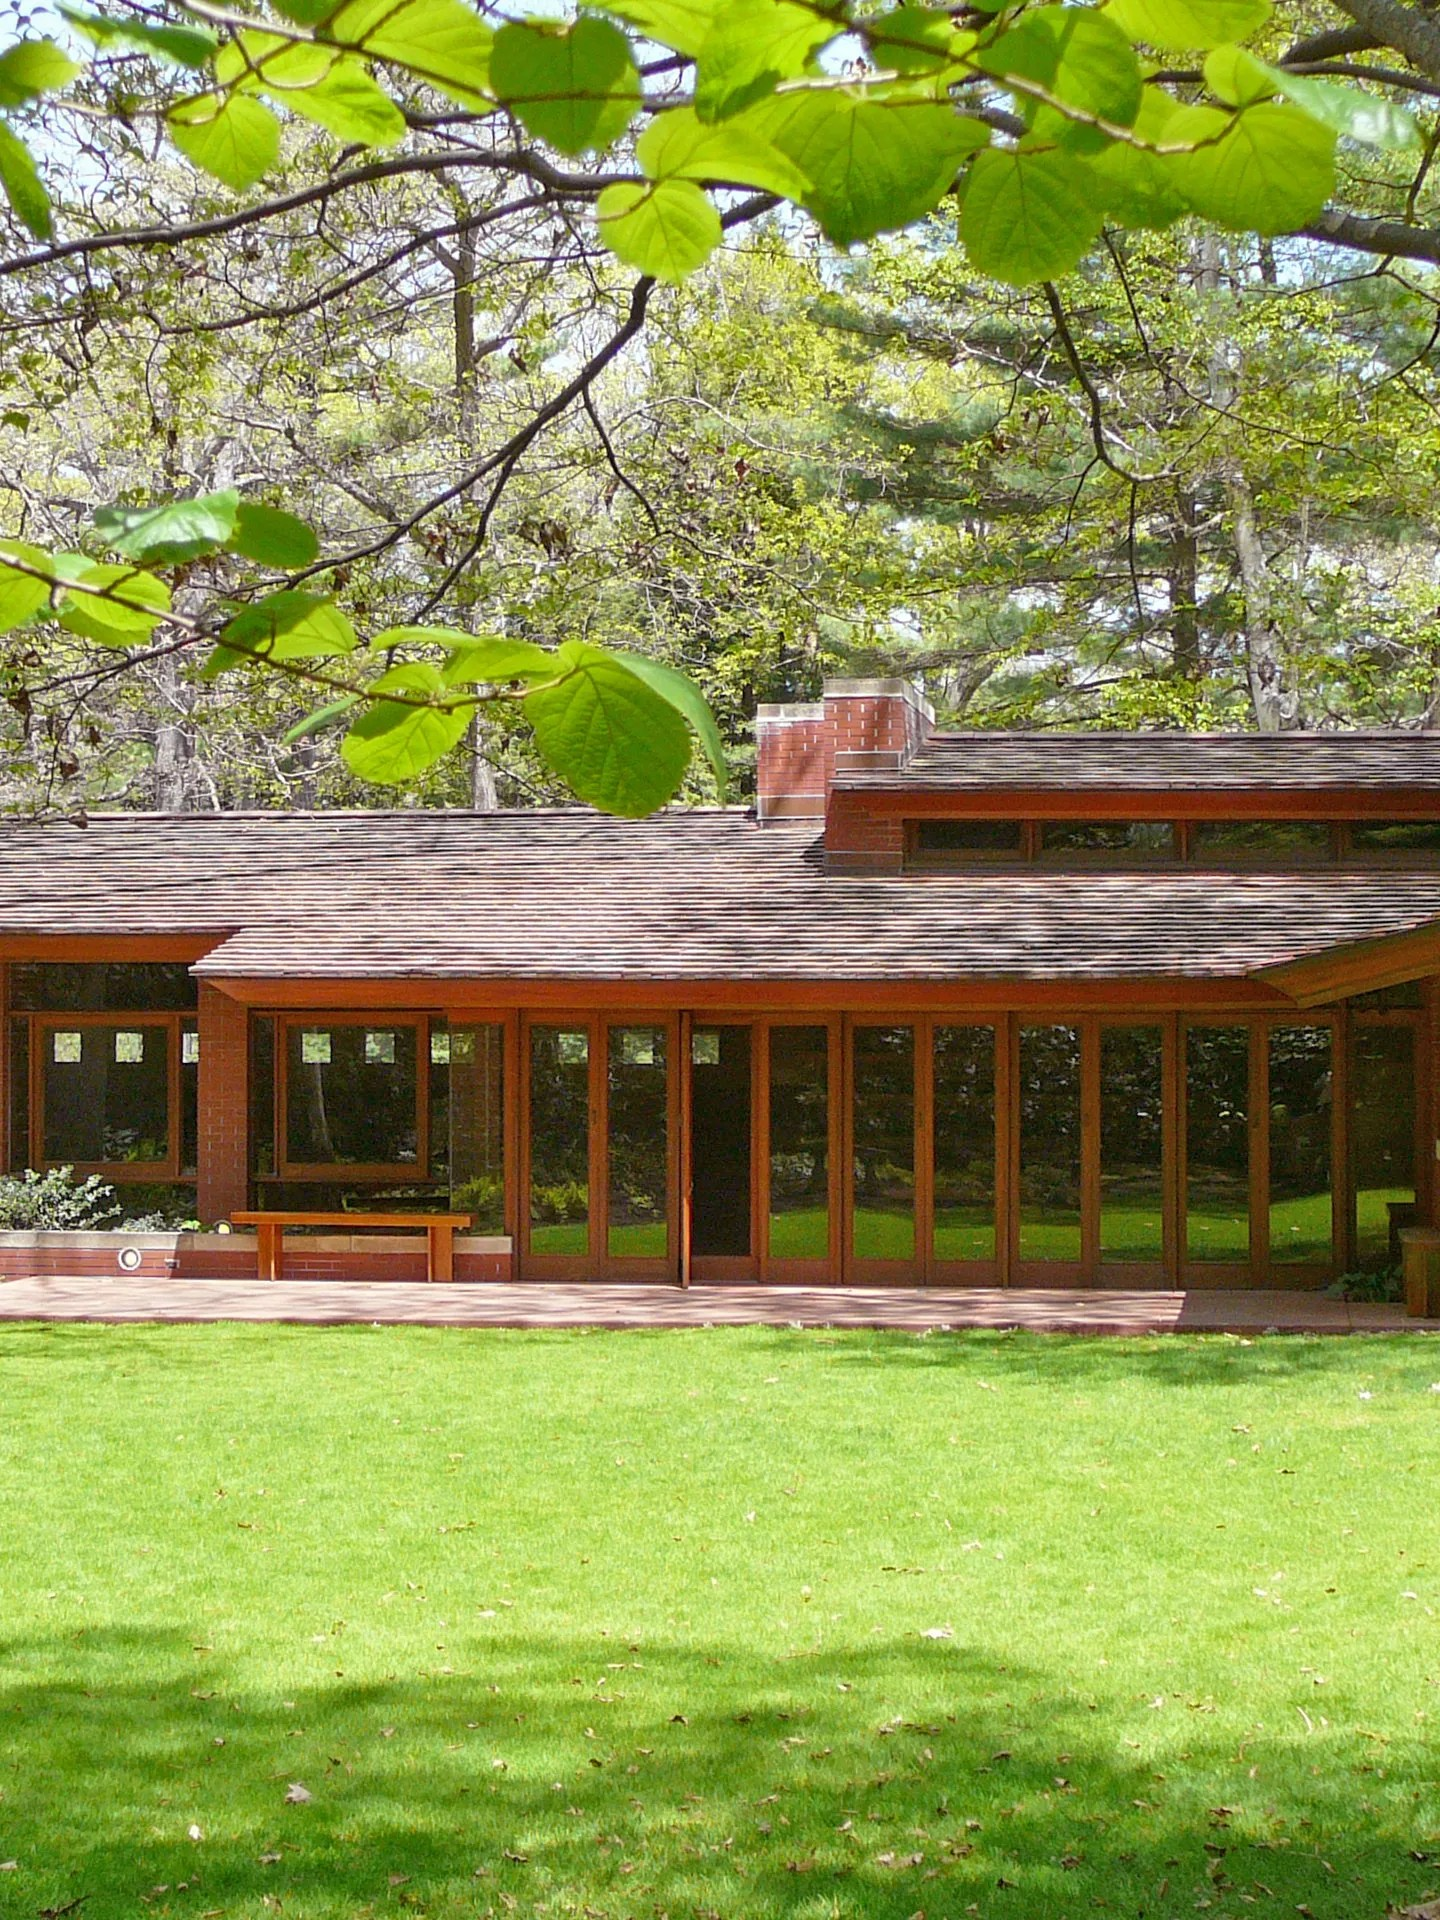 Who Did Frank Lloyd Wright Design The Above House For : frank, lloyd, wright, design, above, house, Coast, Frank, Lloyd, Wright, Buildings, Architectural, Digest